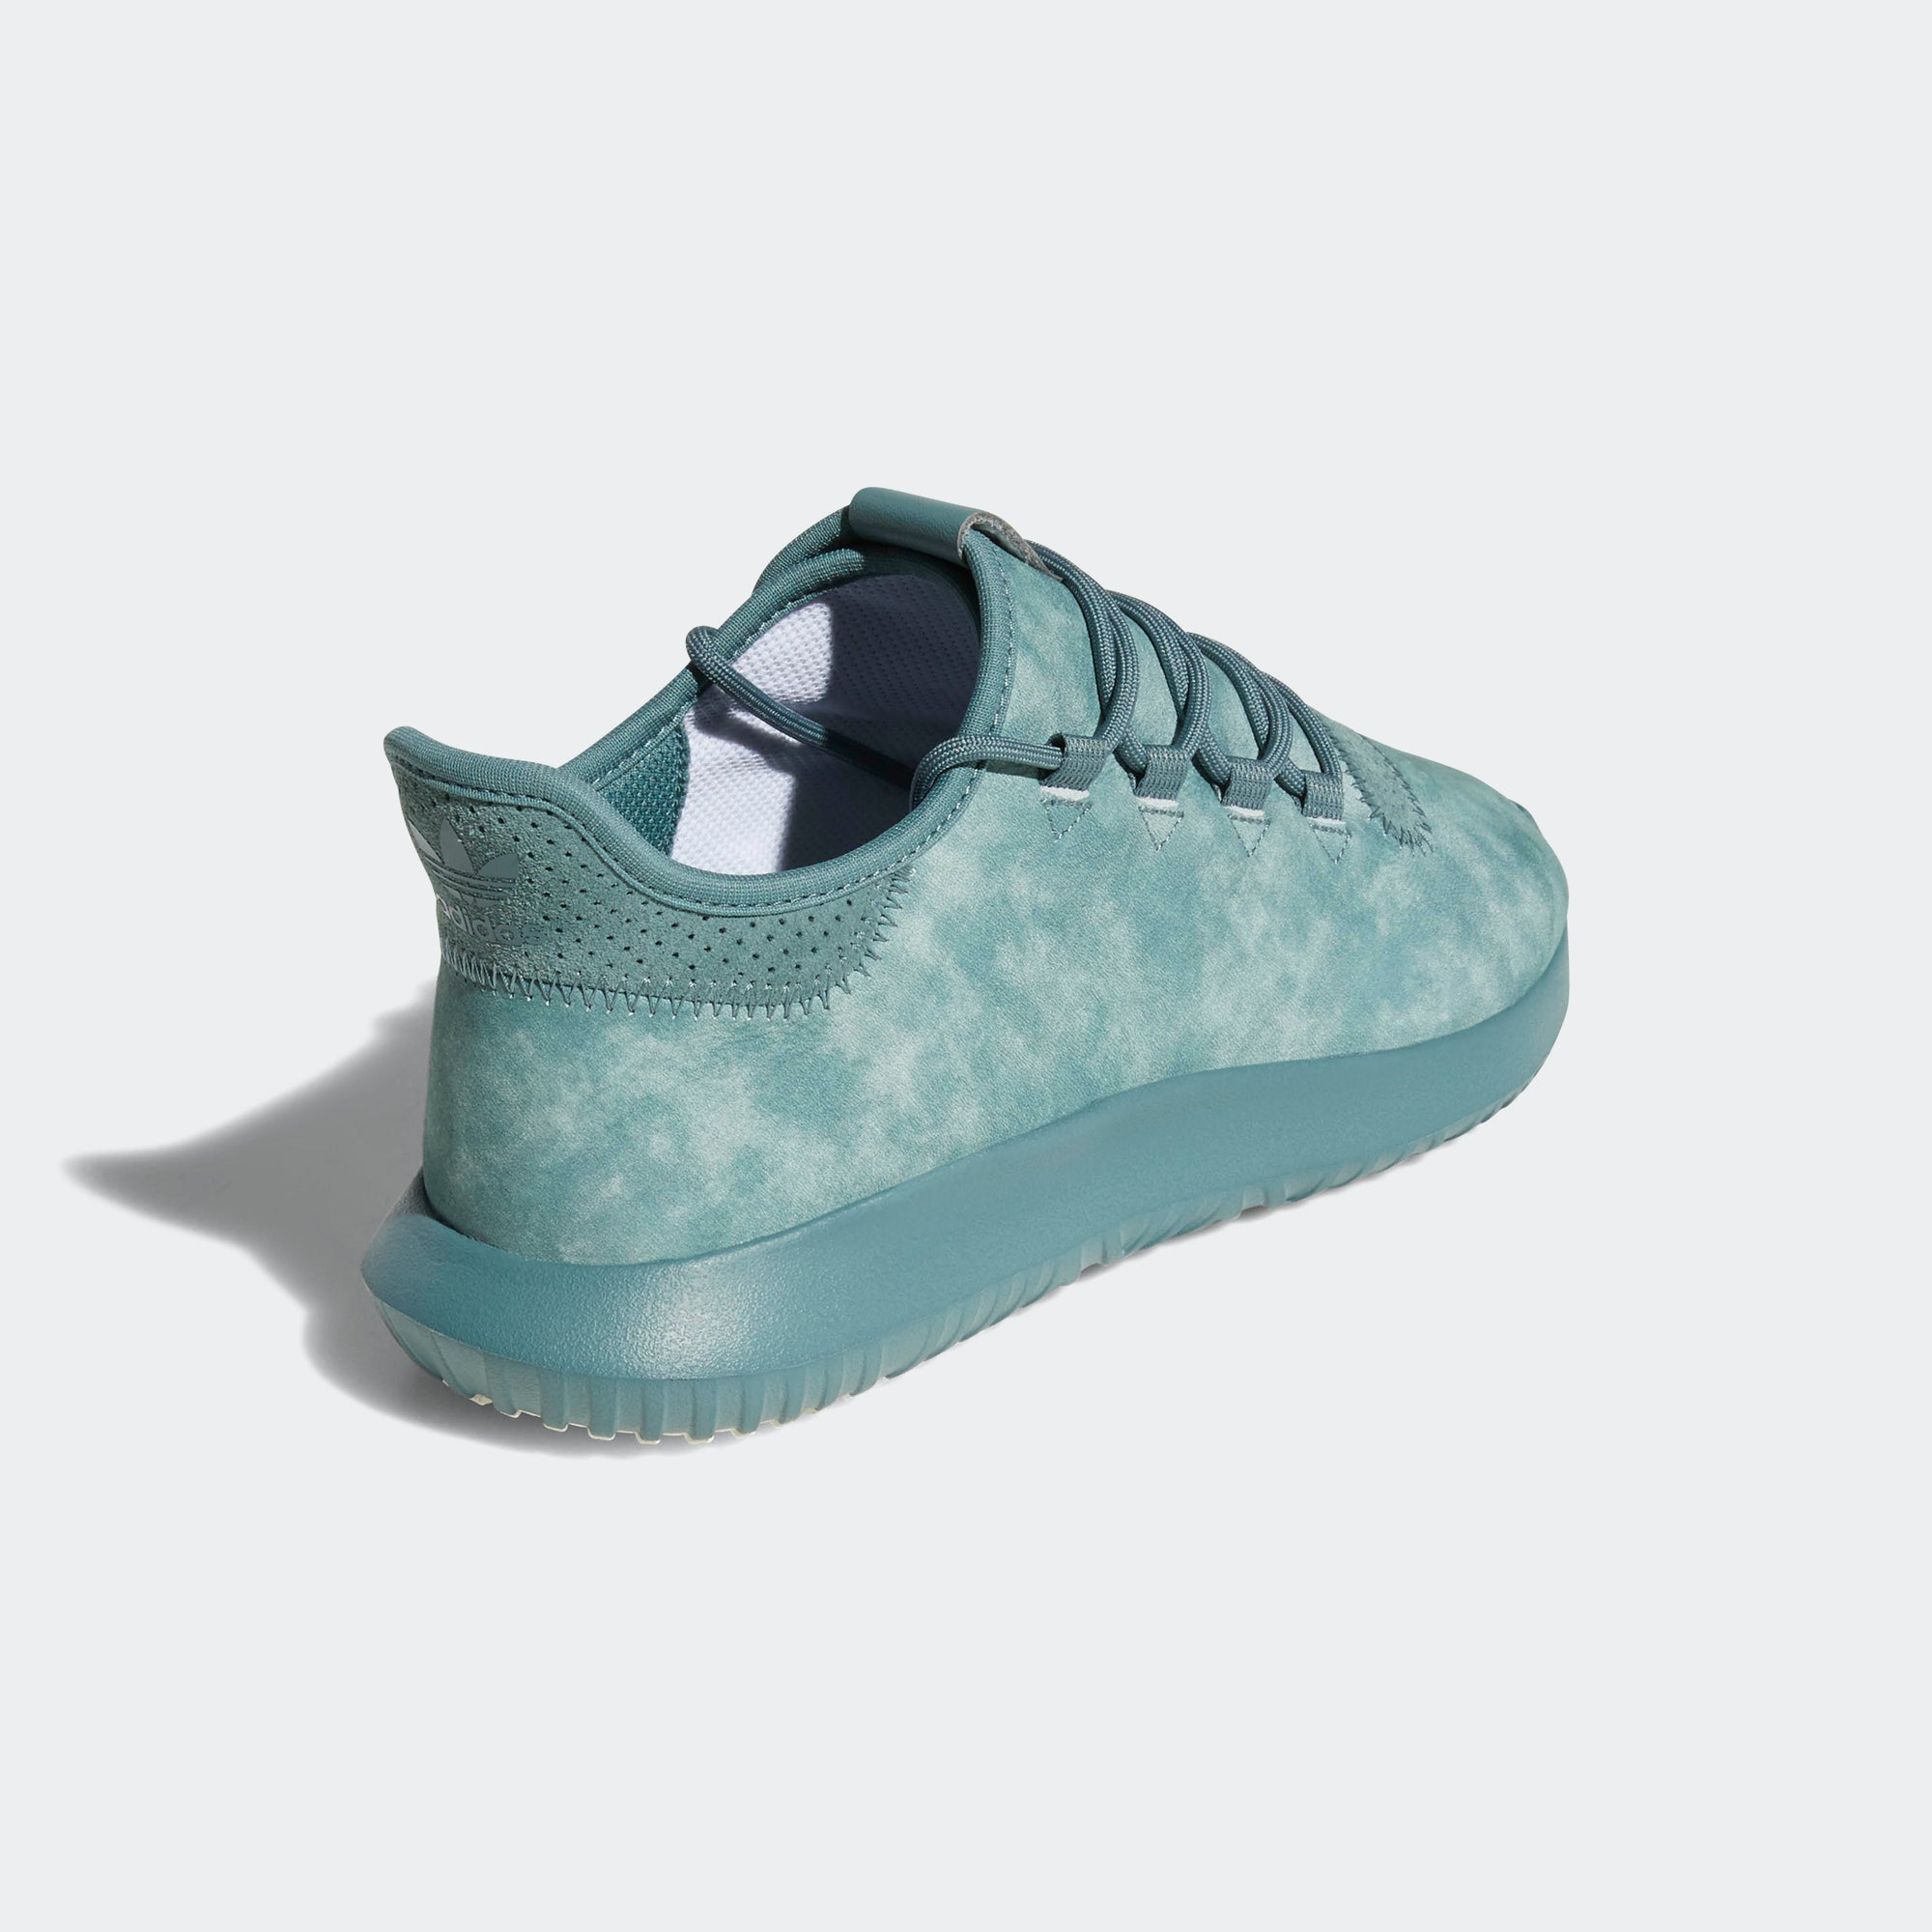 Men's Adidas Originals Tubular Shadow Shoes Raw Green B37596